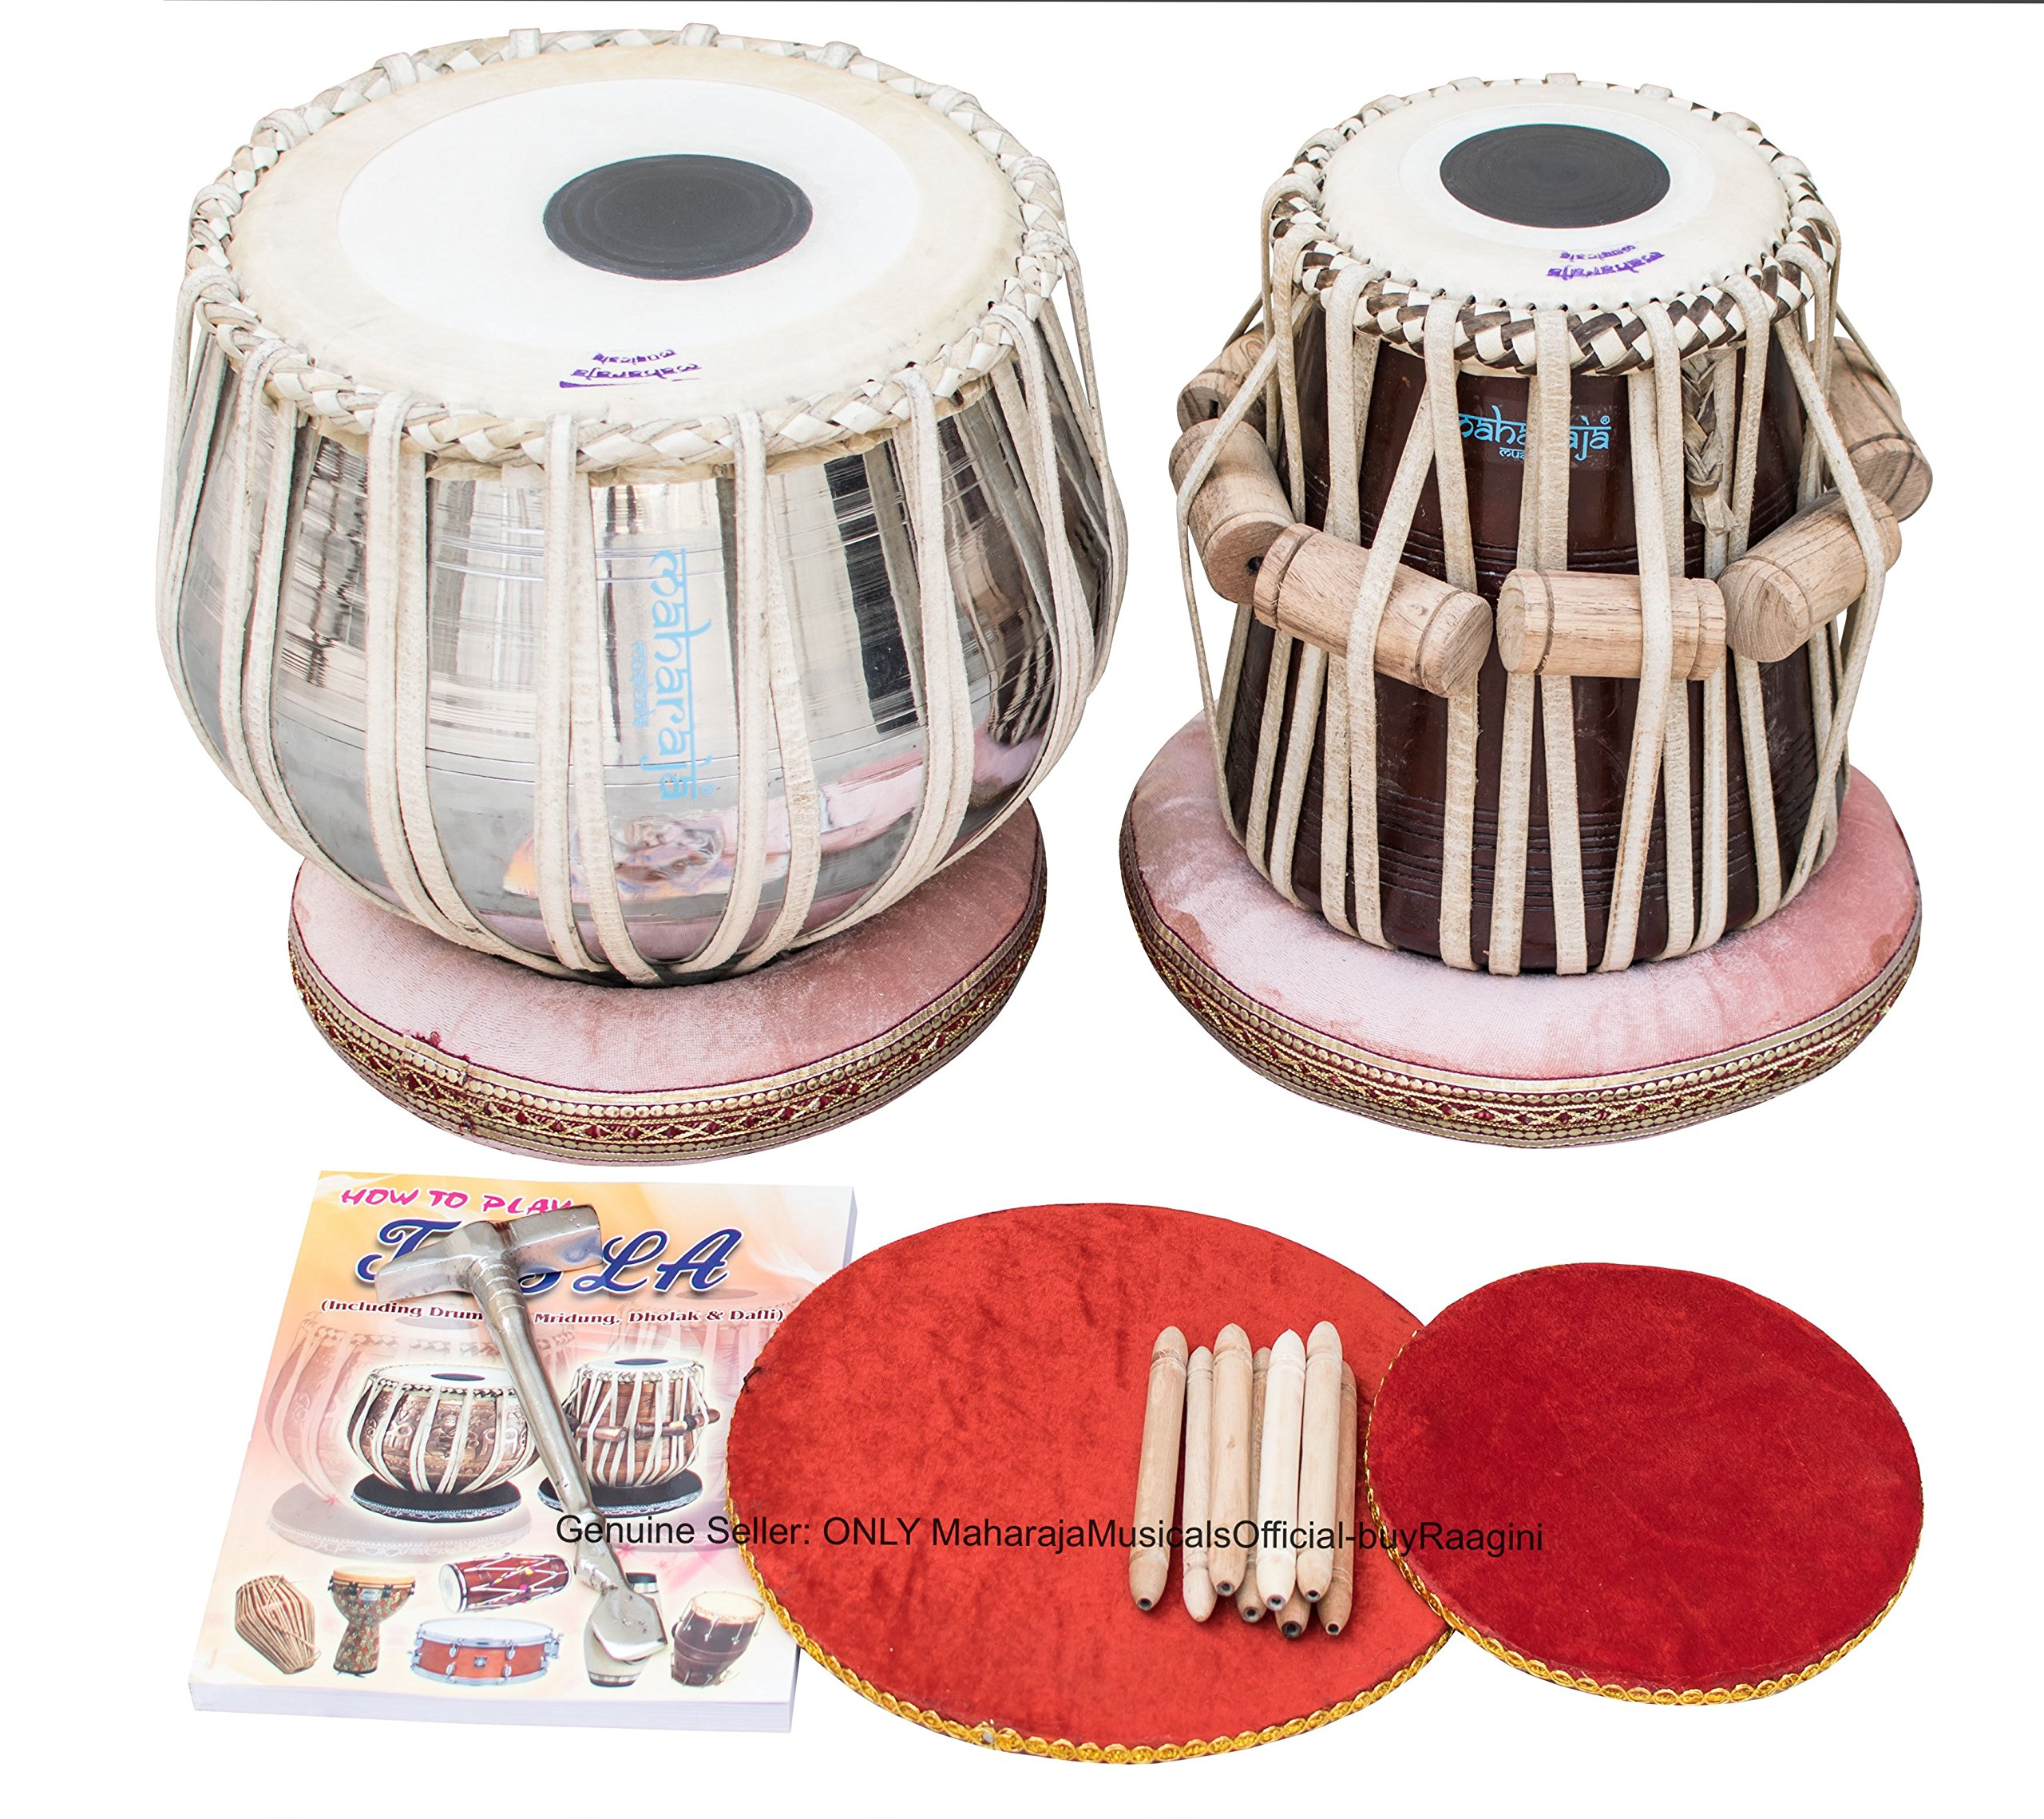 Maharaja Musicals Tabla Set, Classic Brass Tabla Drums, Brass Bayan 3 Kg, Sheesham Tabla Dayan, Nylon Bag, Book, Hammer, Cushions, Cover (PDI-CG) by Maharaja Musicals